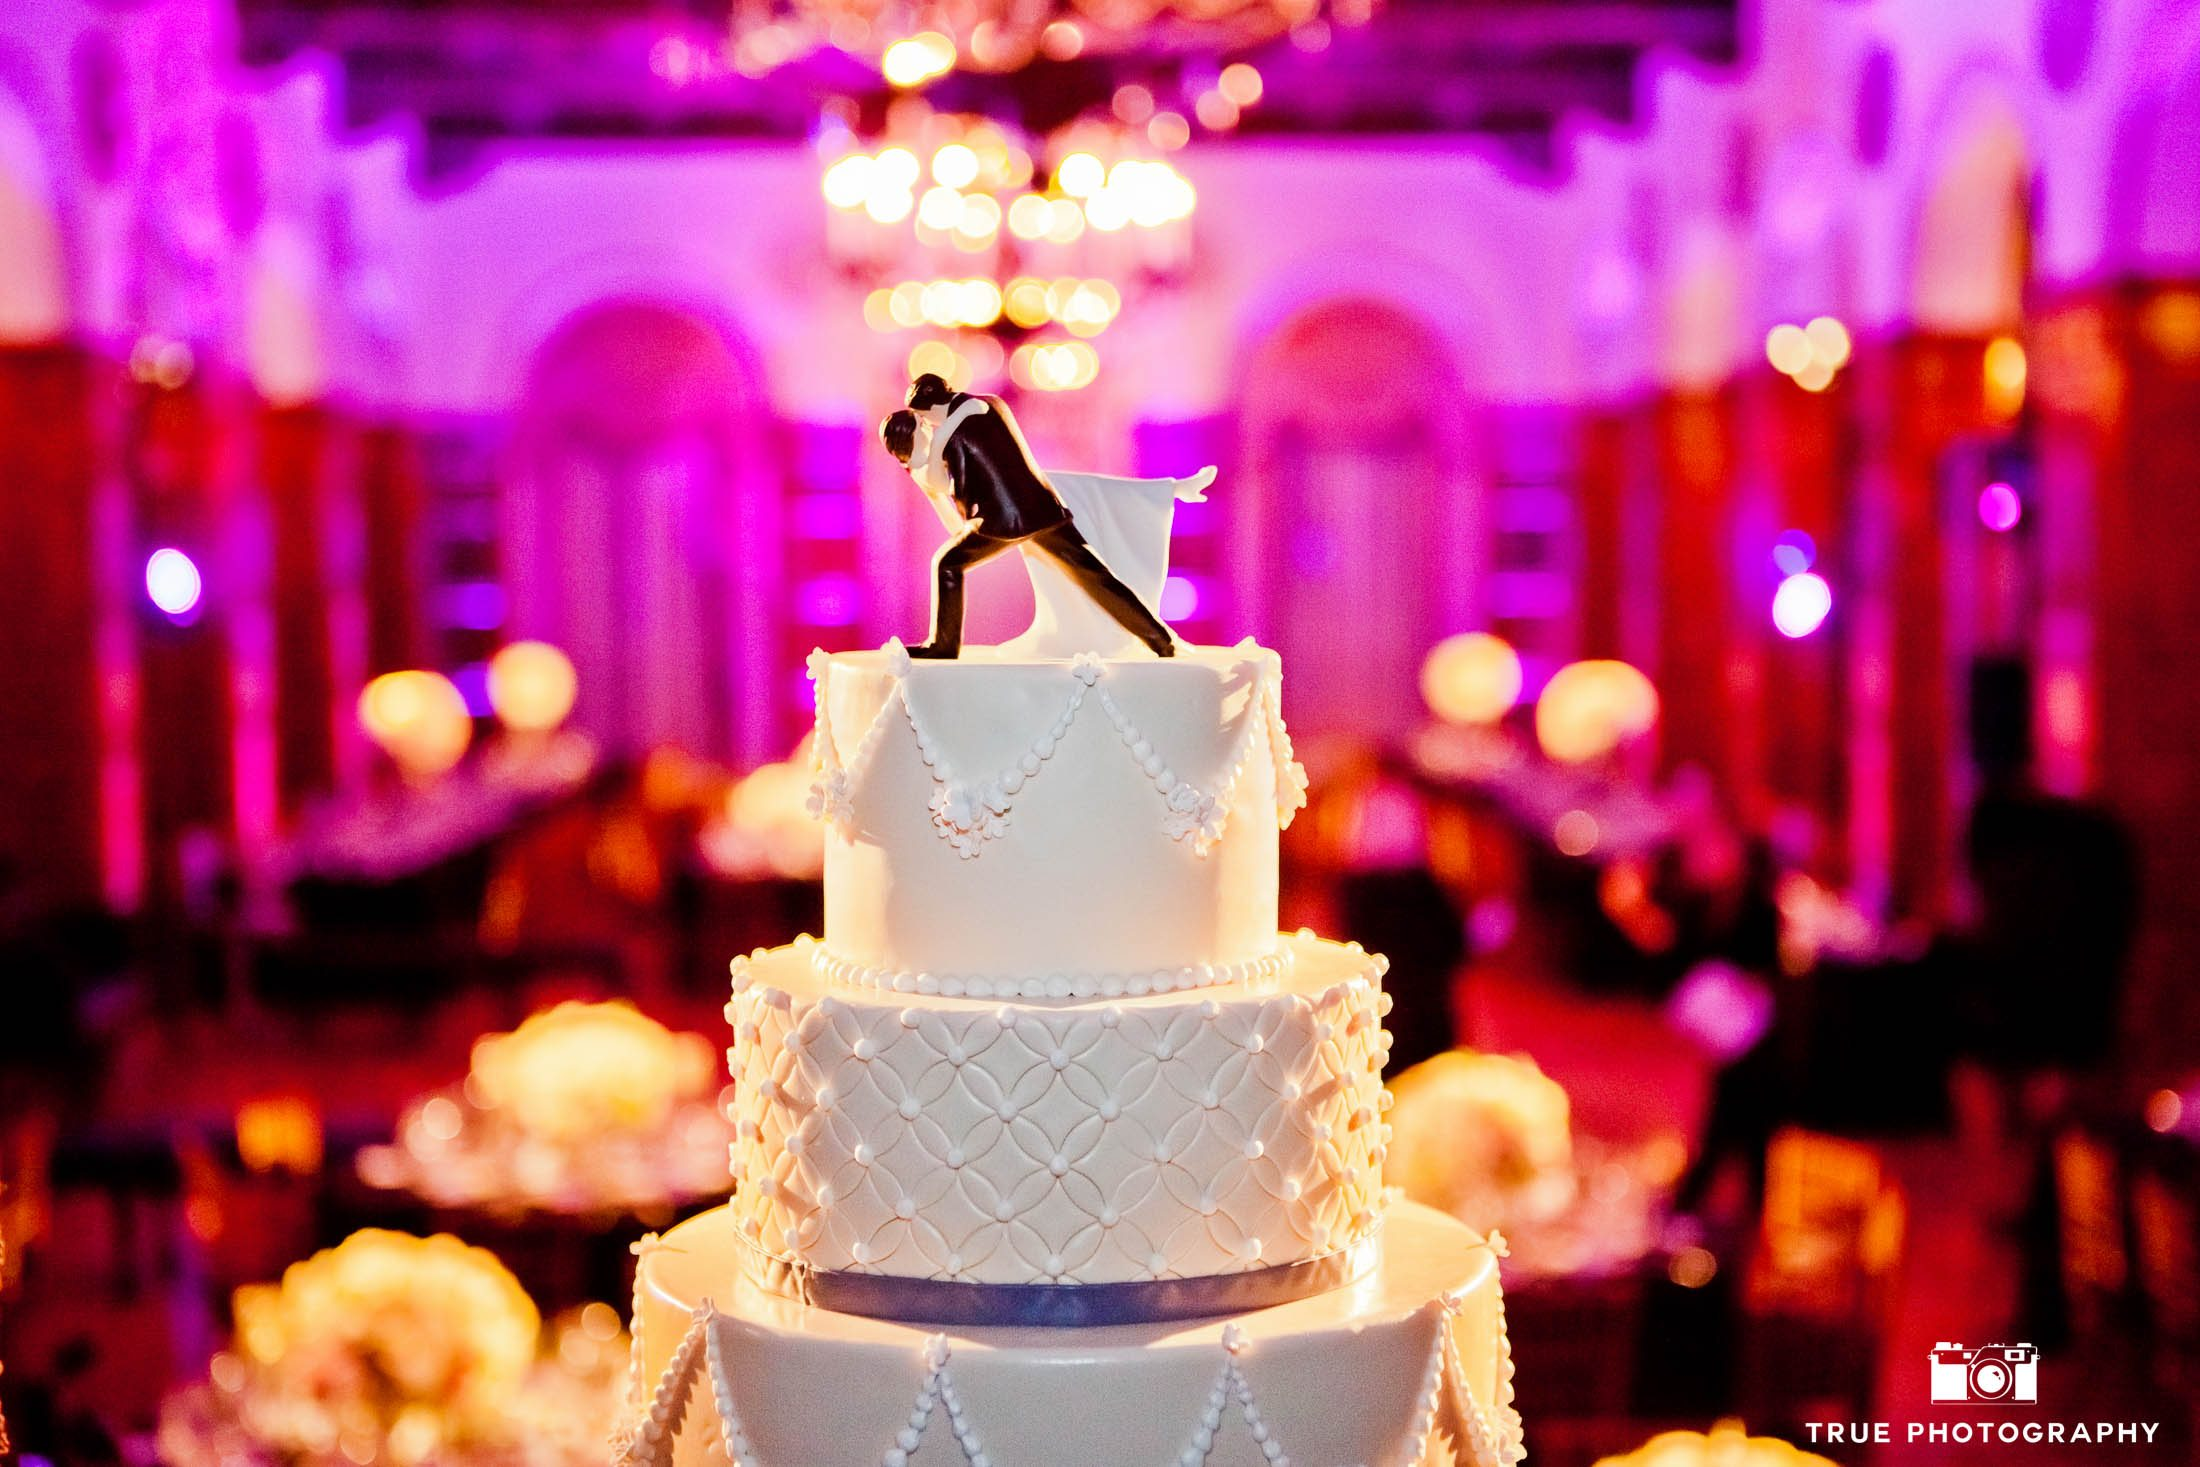 Classic wedding cake with cake topper of bride and groom kissing